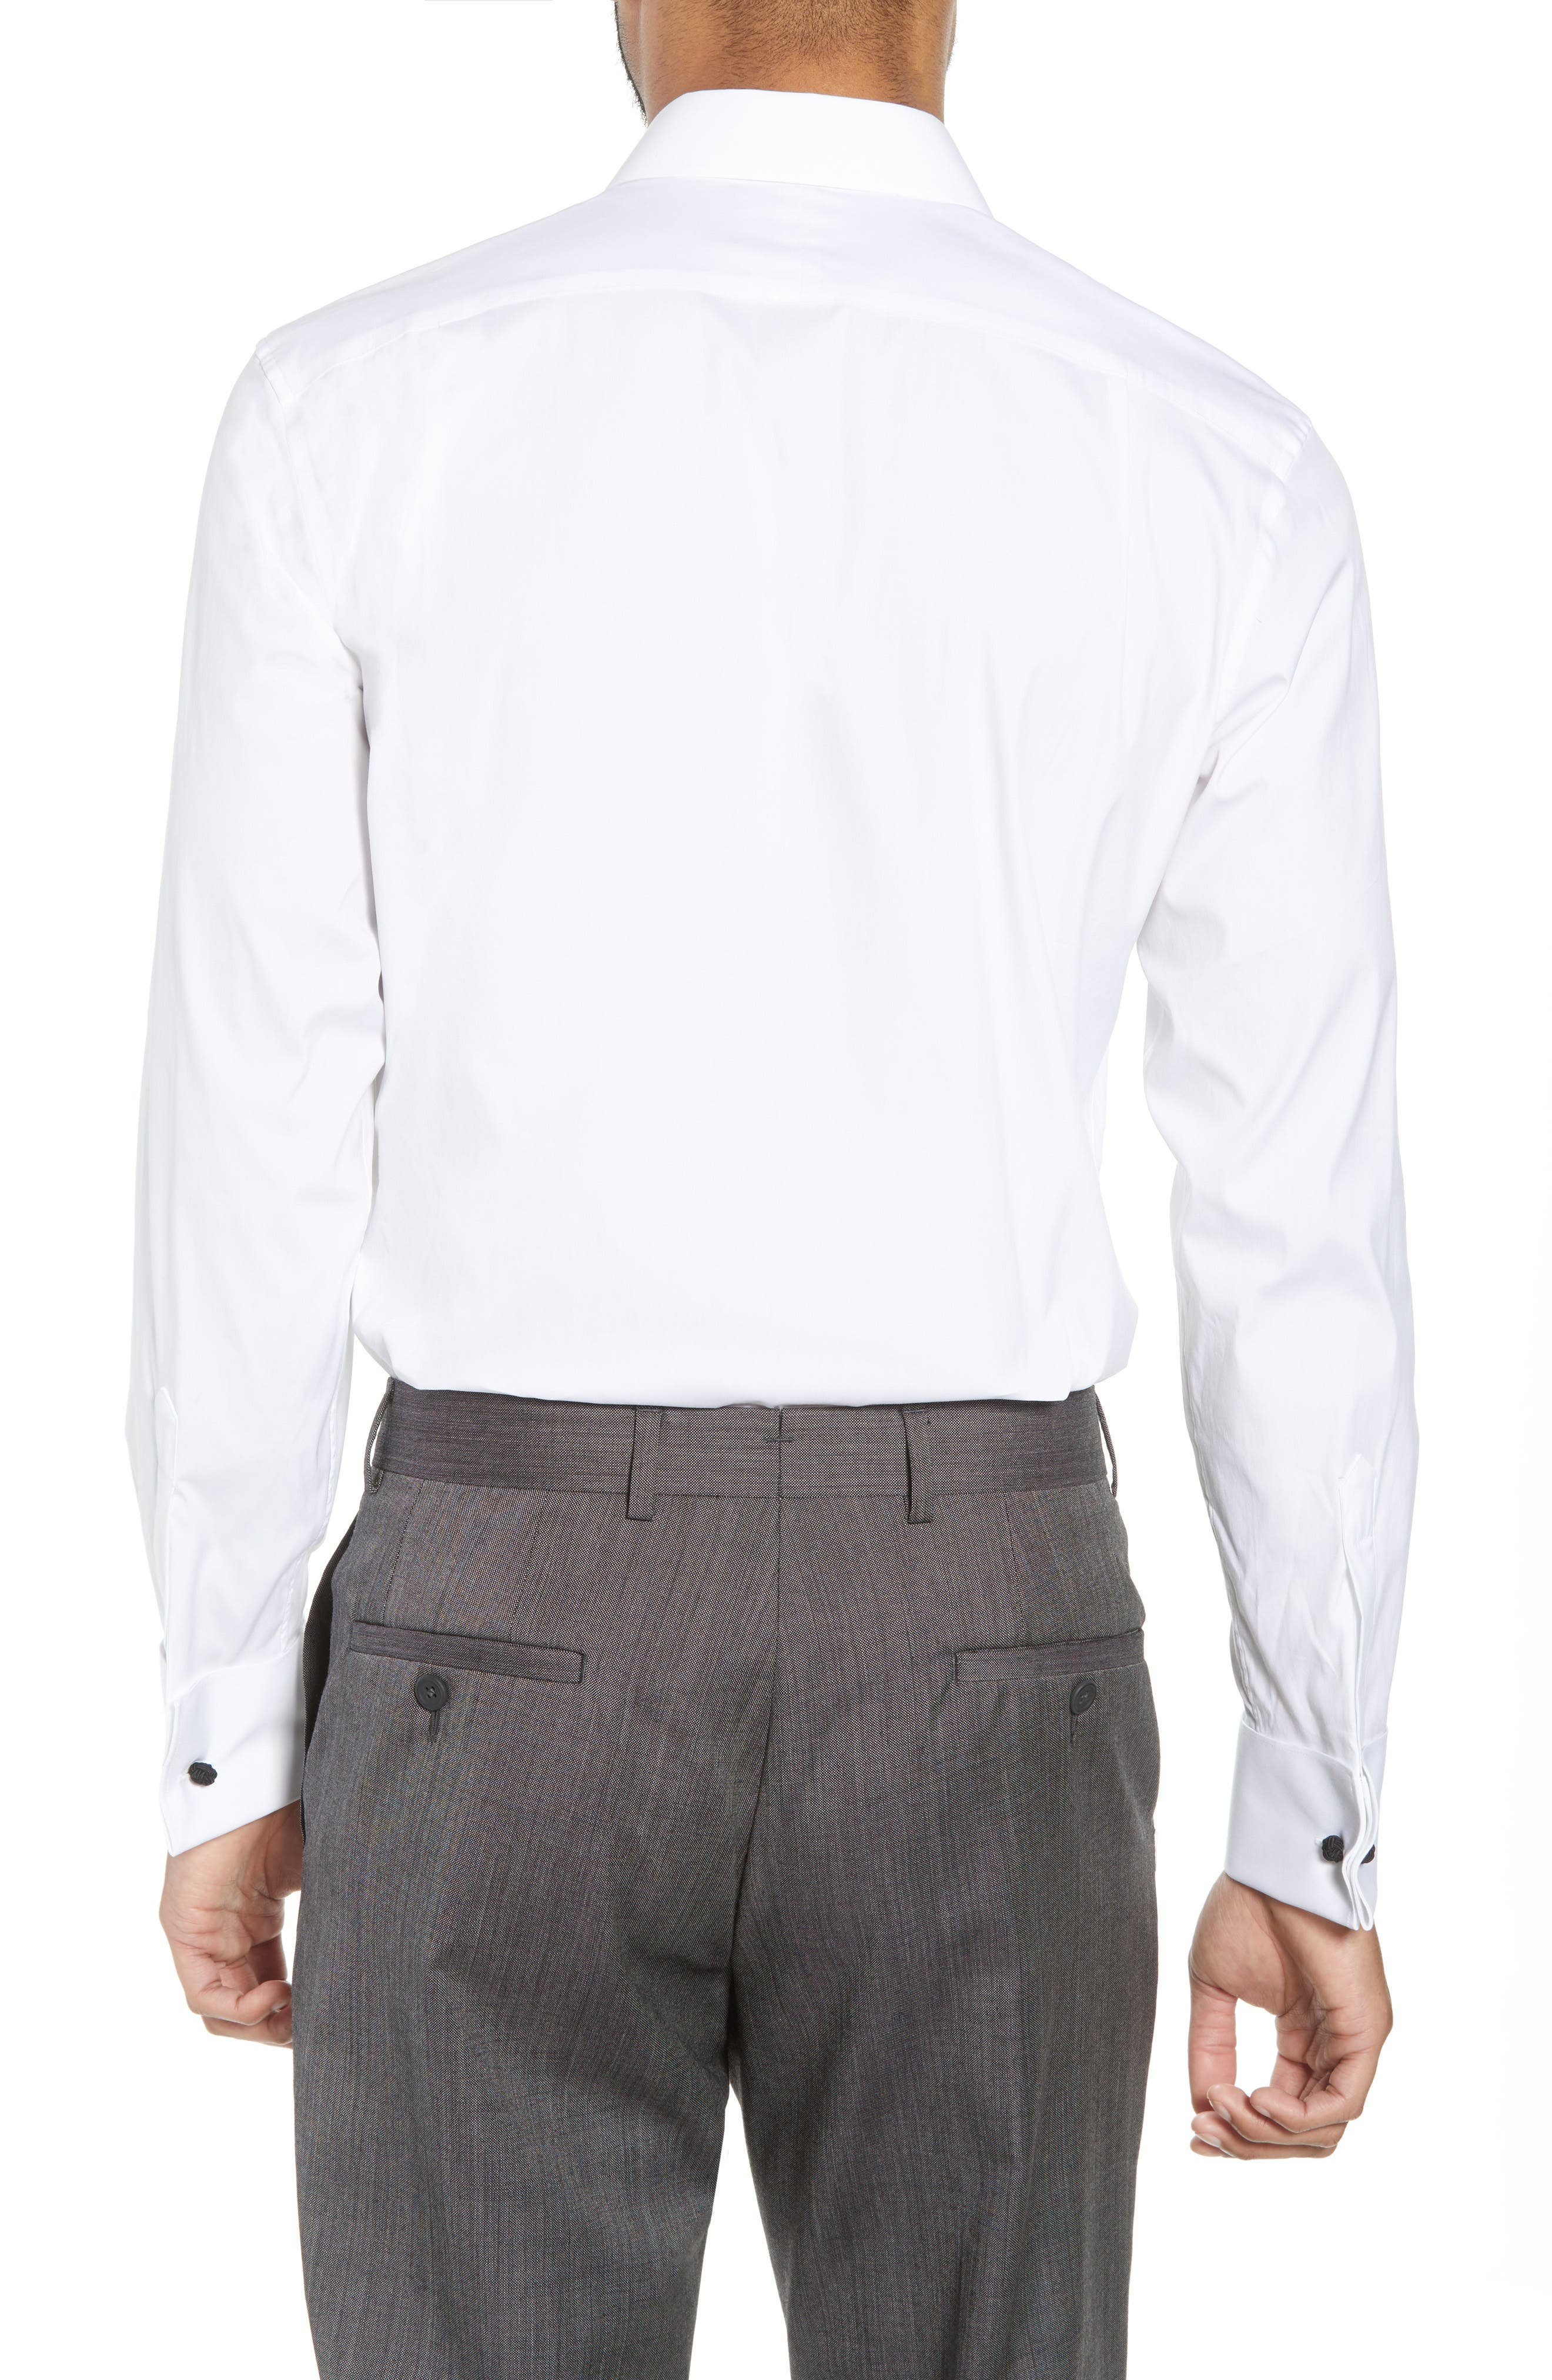 Capstone Stretch Slim Fit Tuxedo Shirt,                             Alternate thumbnail 3, color,                             WHITE